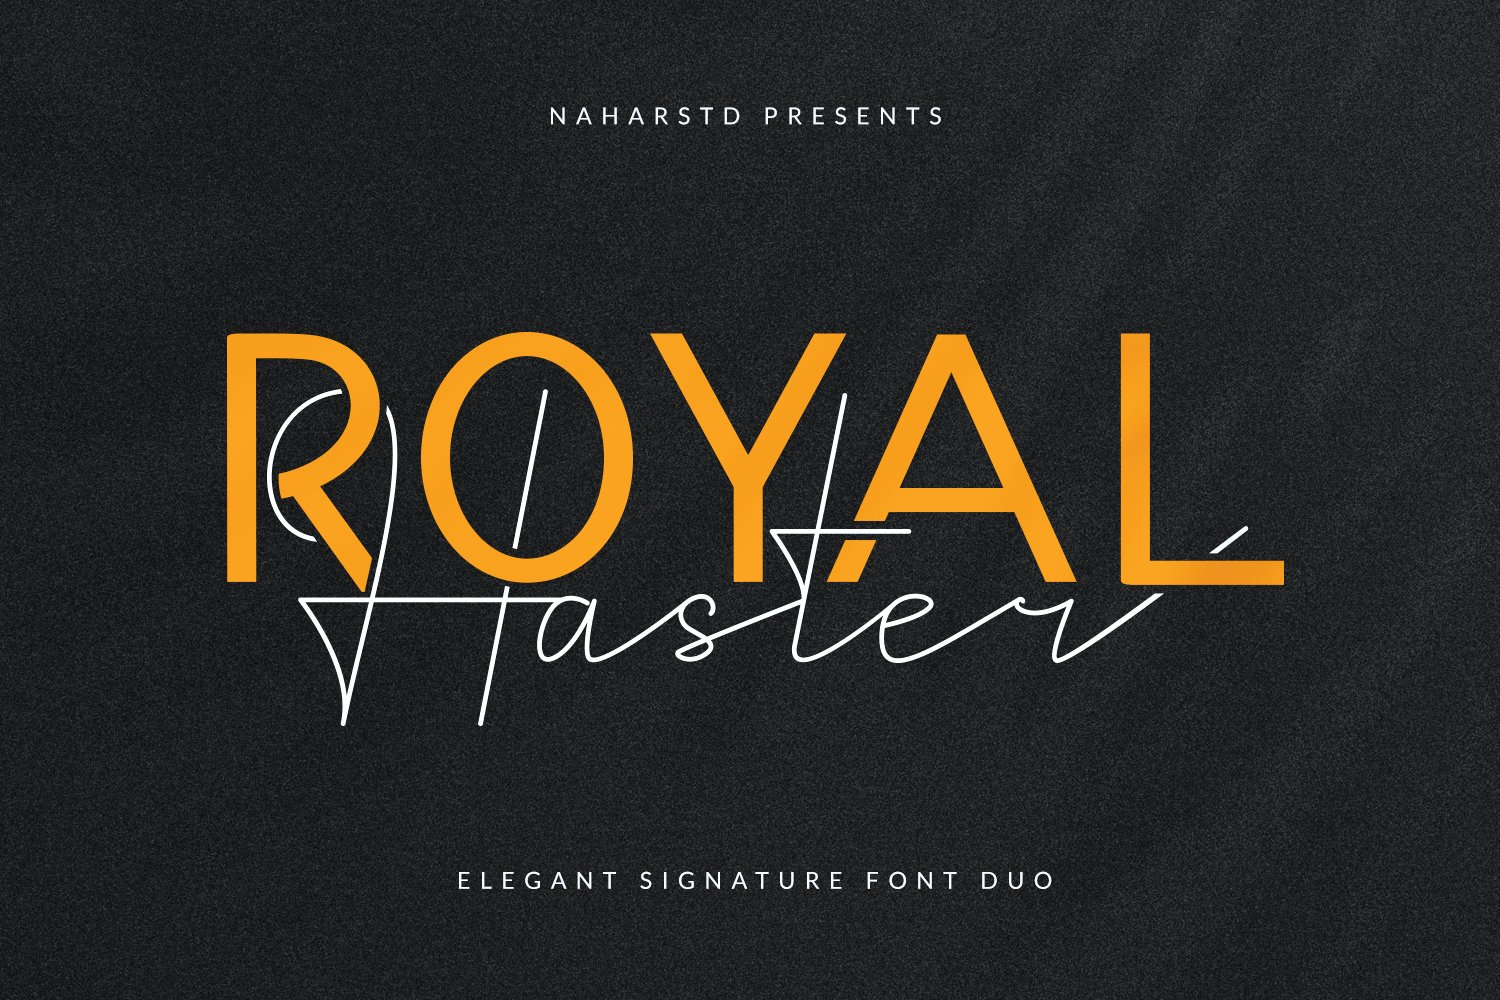 Royal Haster | Elegant Signature Font Duo example image 1